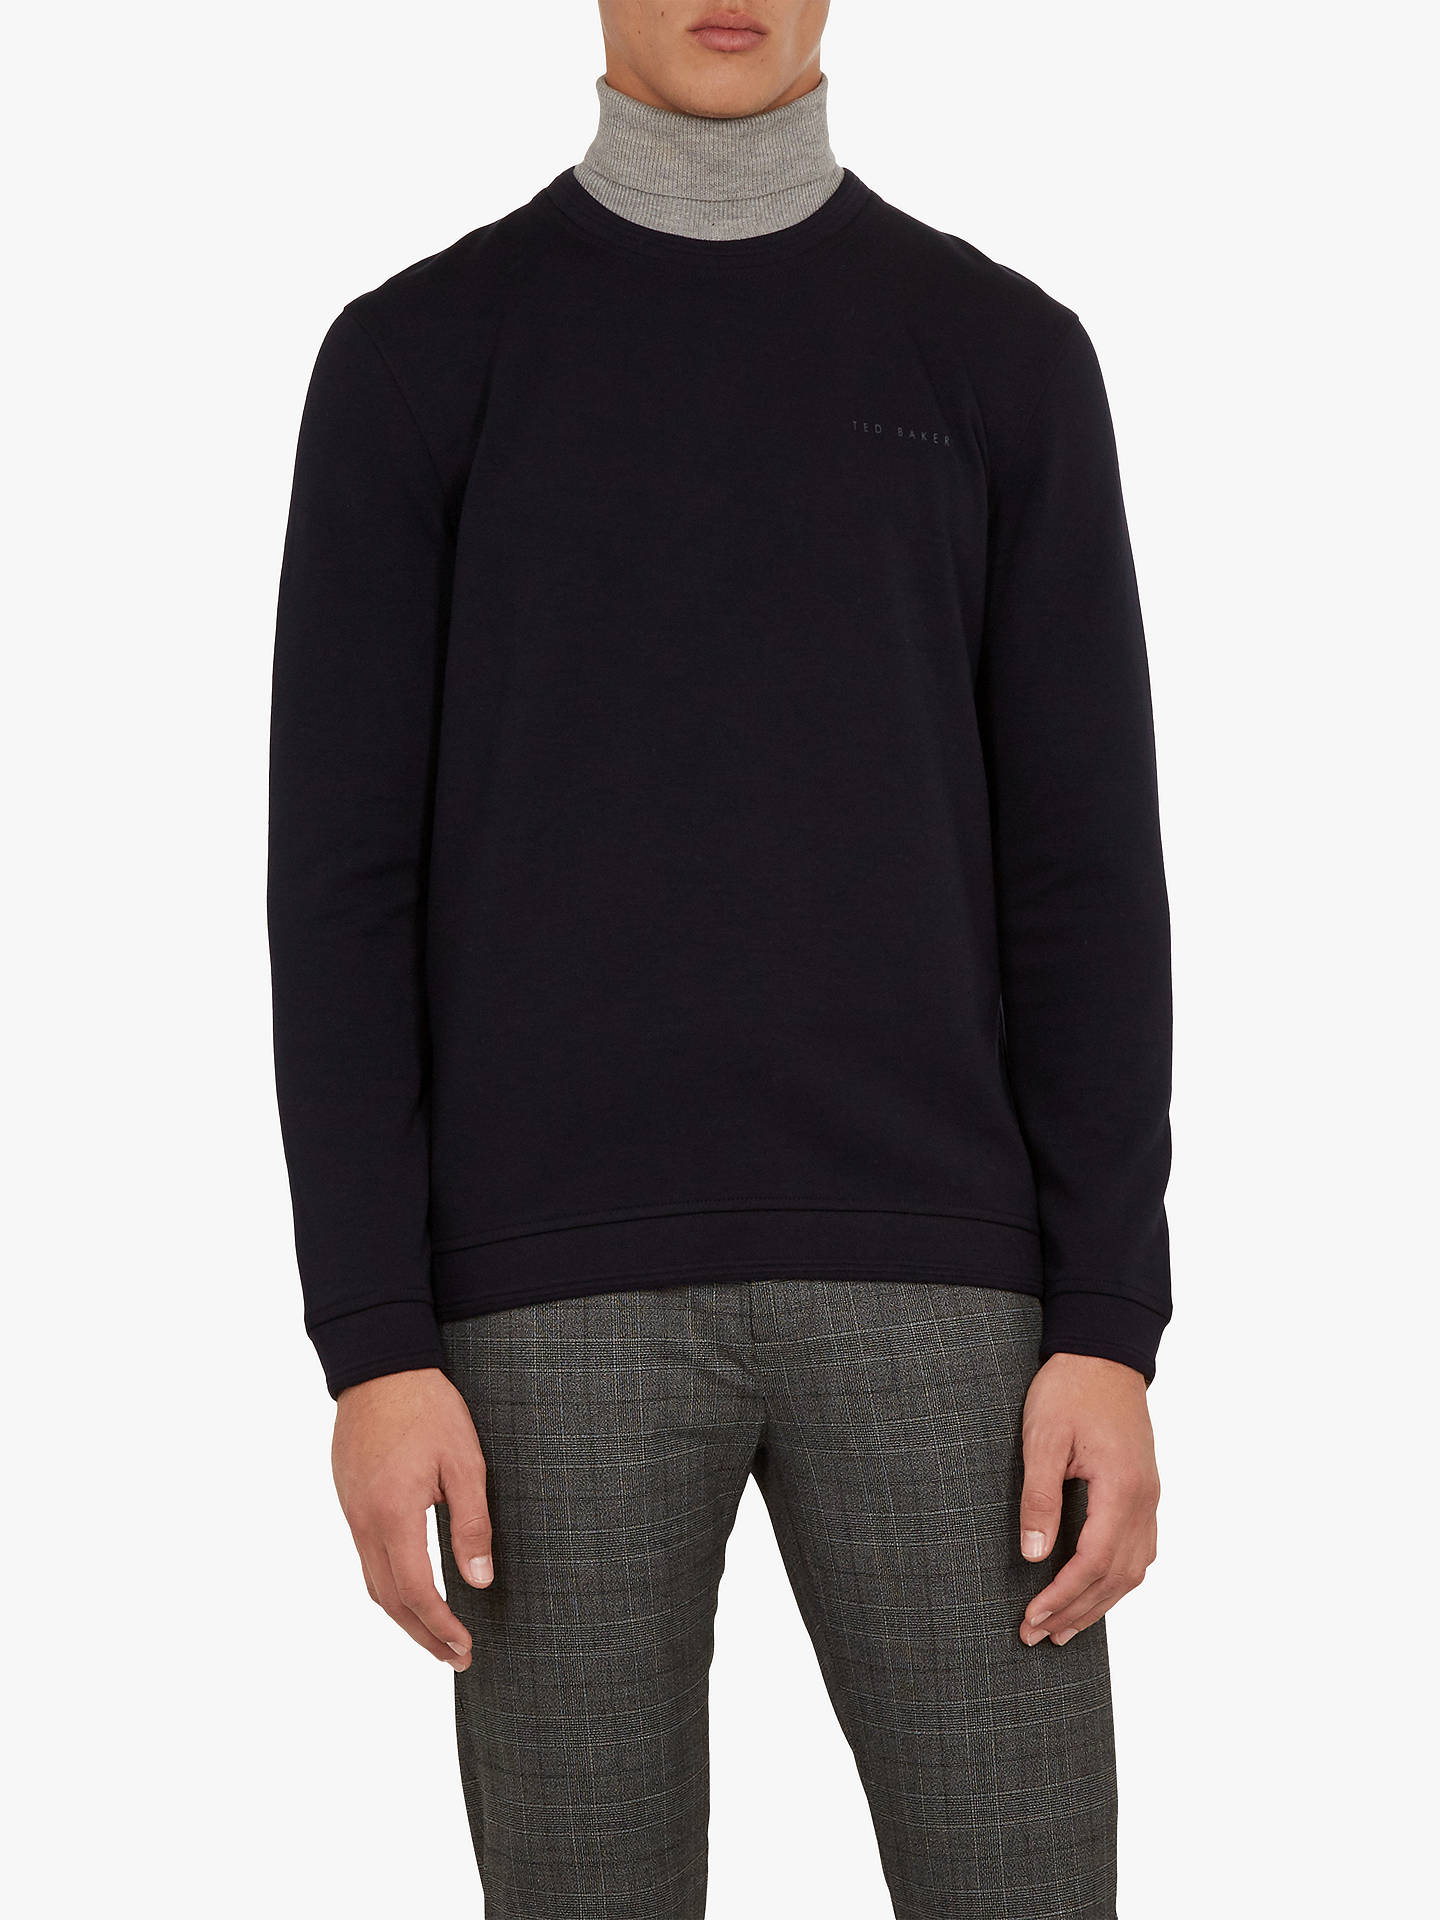 BuyTed Baker Wall Branded Sweatshirt, Navy Blue, S Online at johnlewis.com